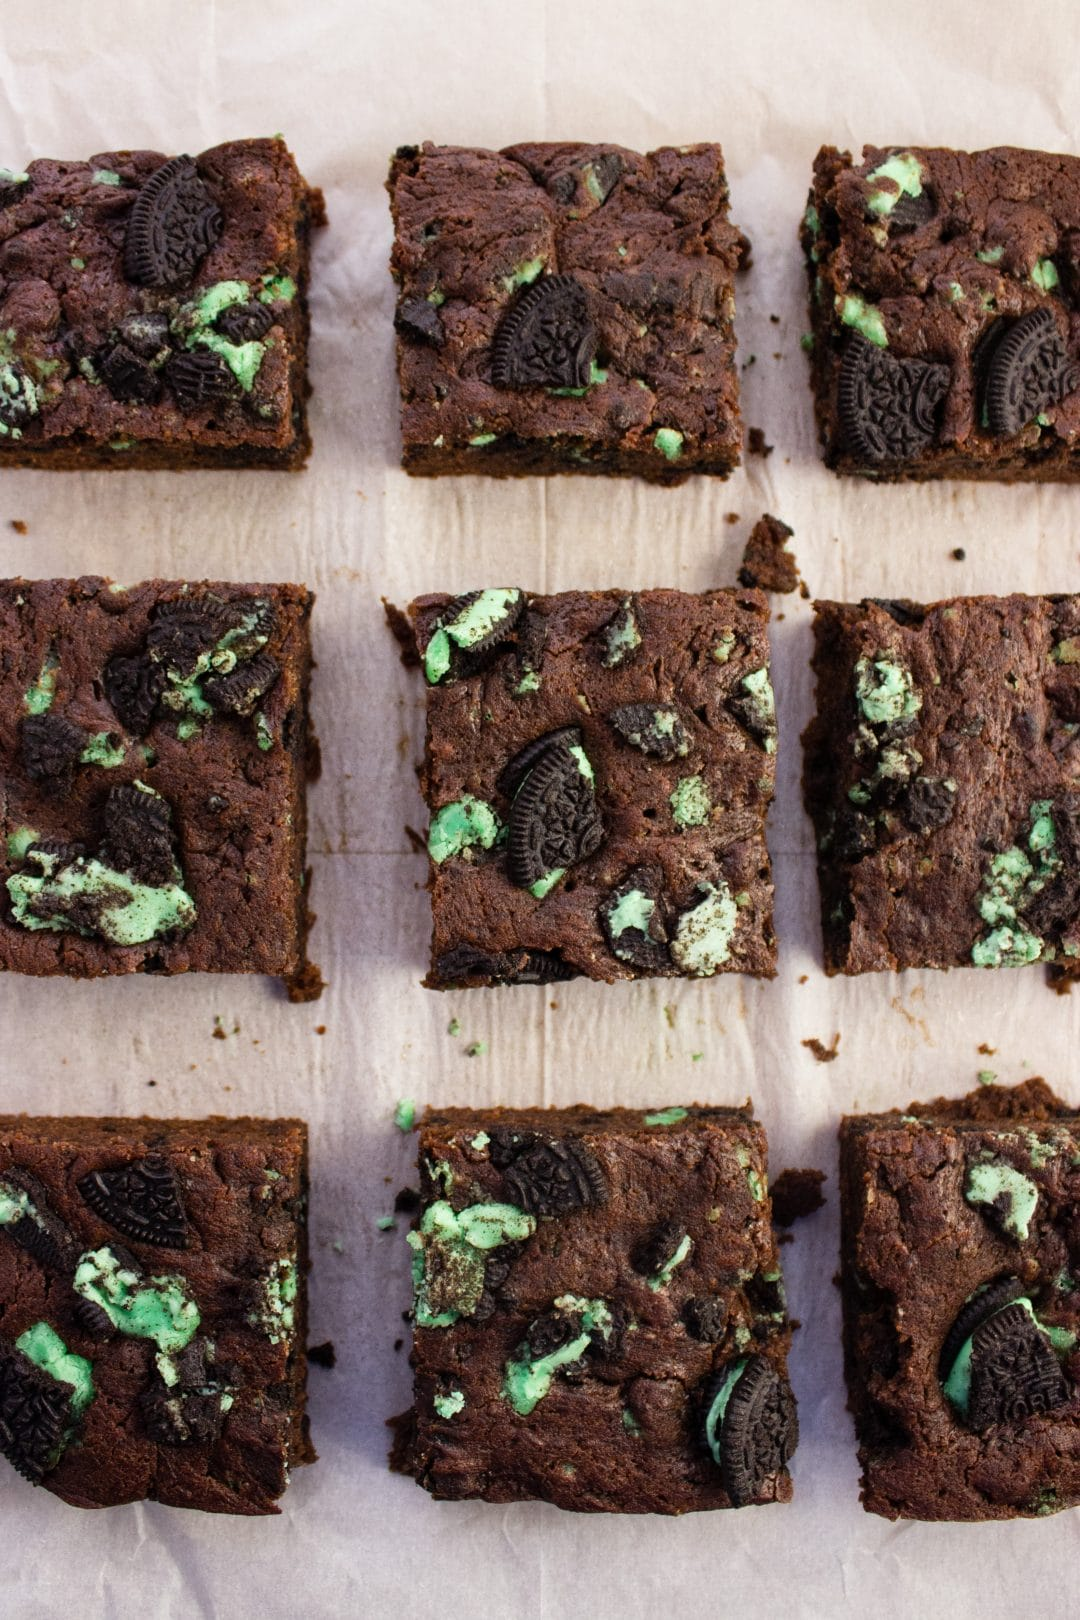 Fudgy Mint Brownies - Vegan, egg free chocolate mint brownies with minty sandwich cookies that make it green enough in time for St. Patrick's Day. simplylakita.com #stpatricksday